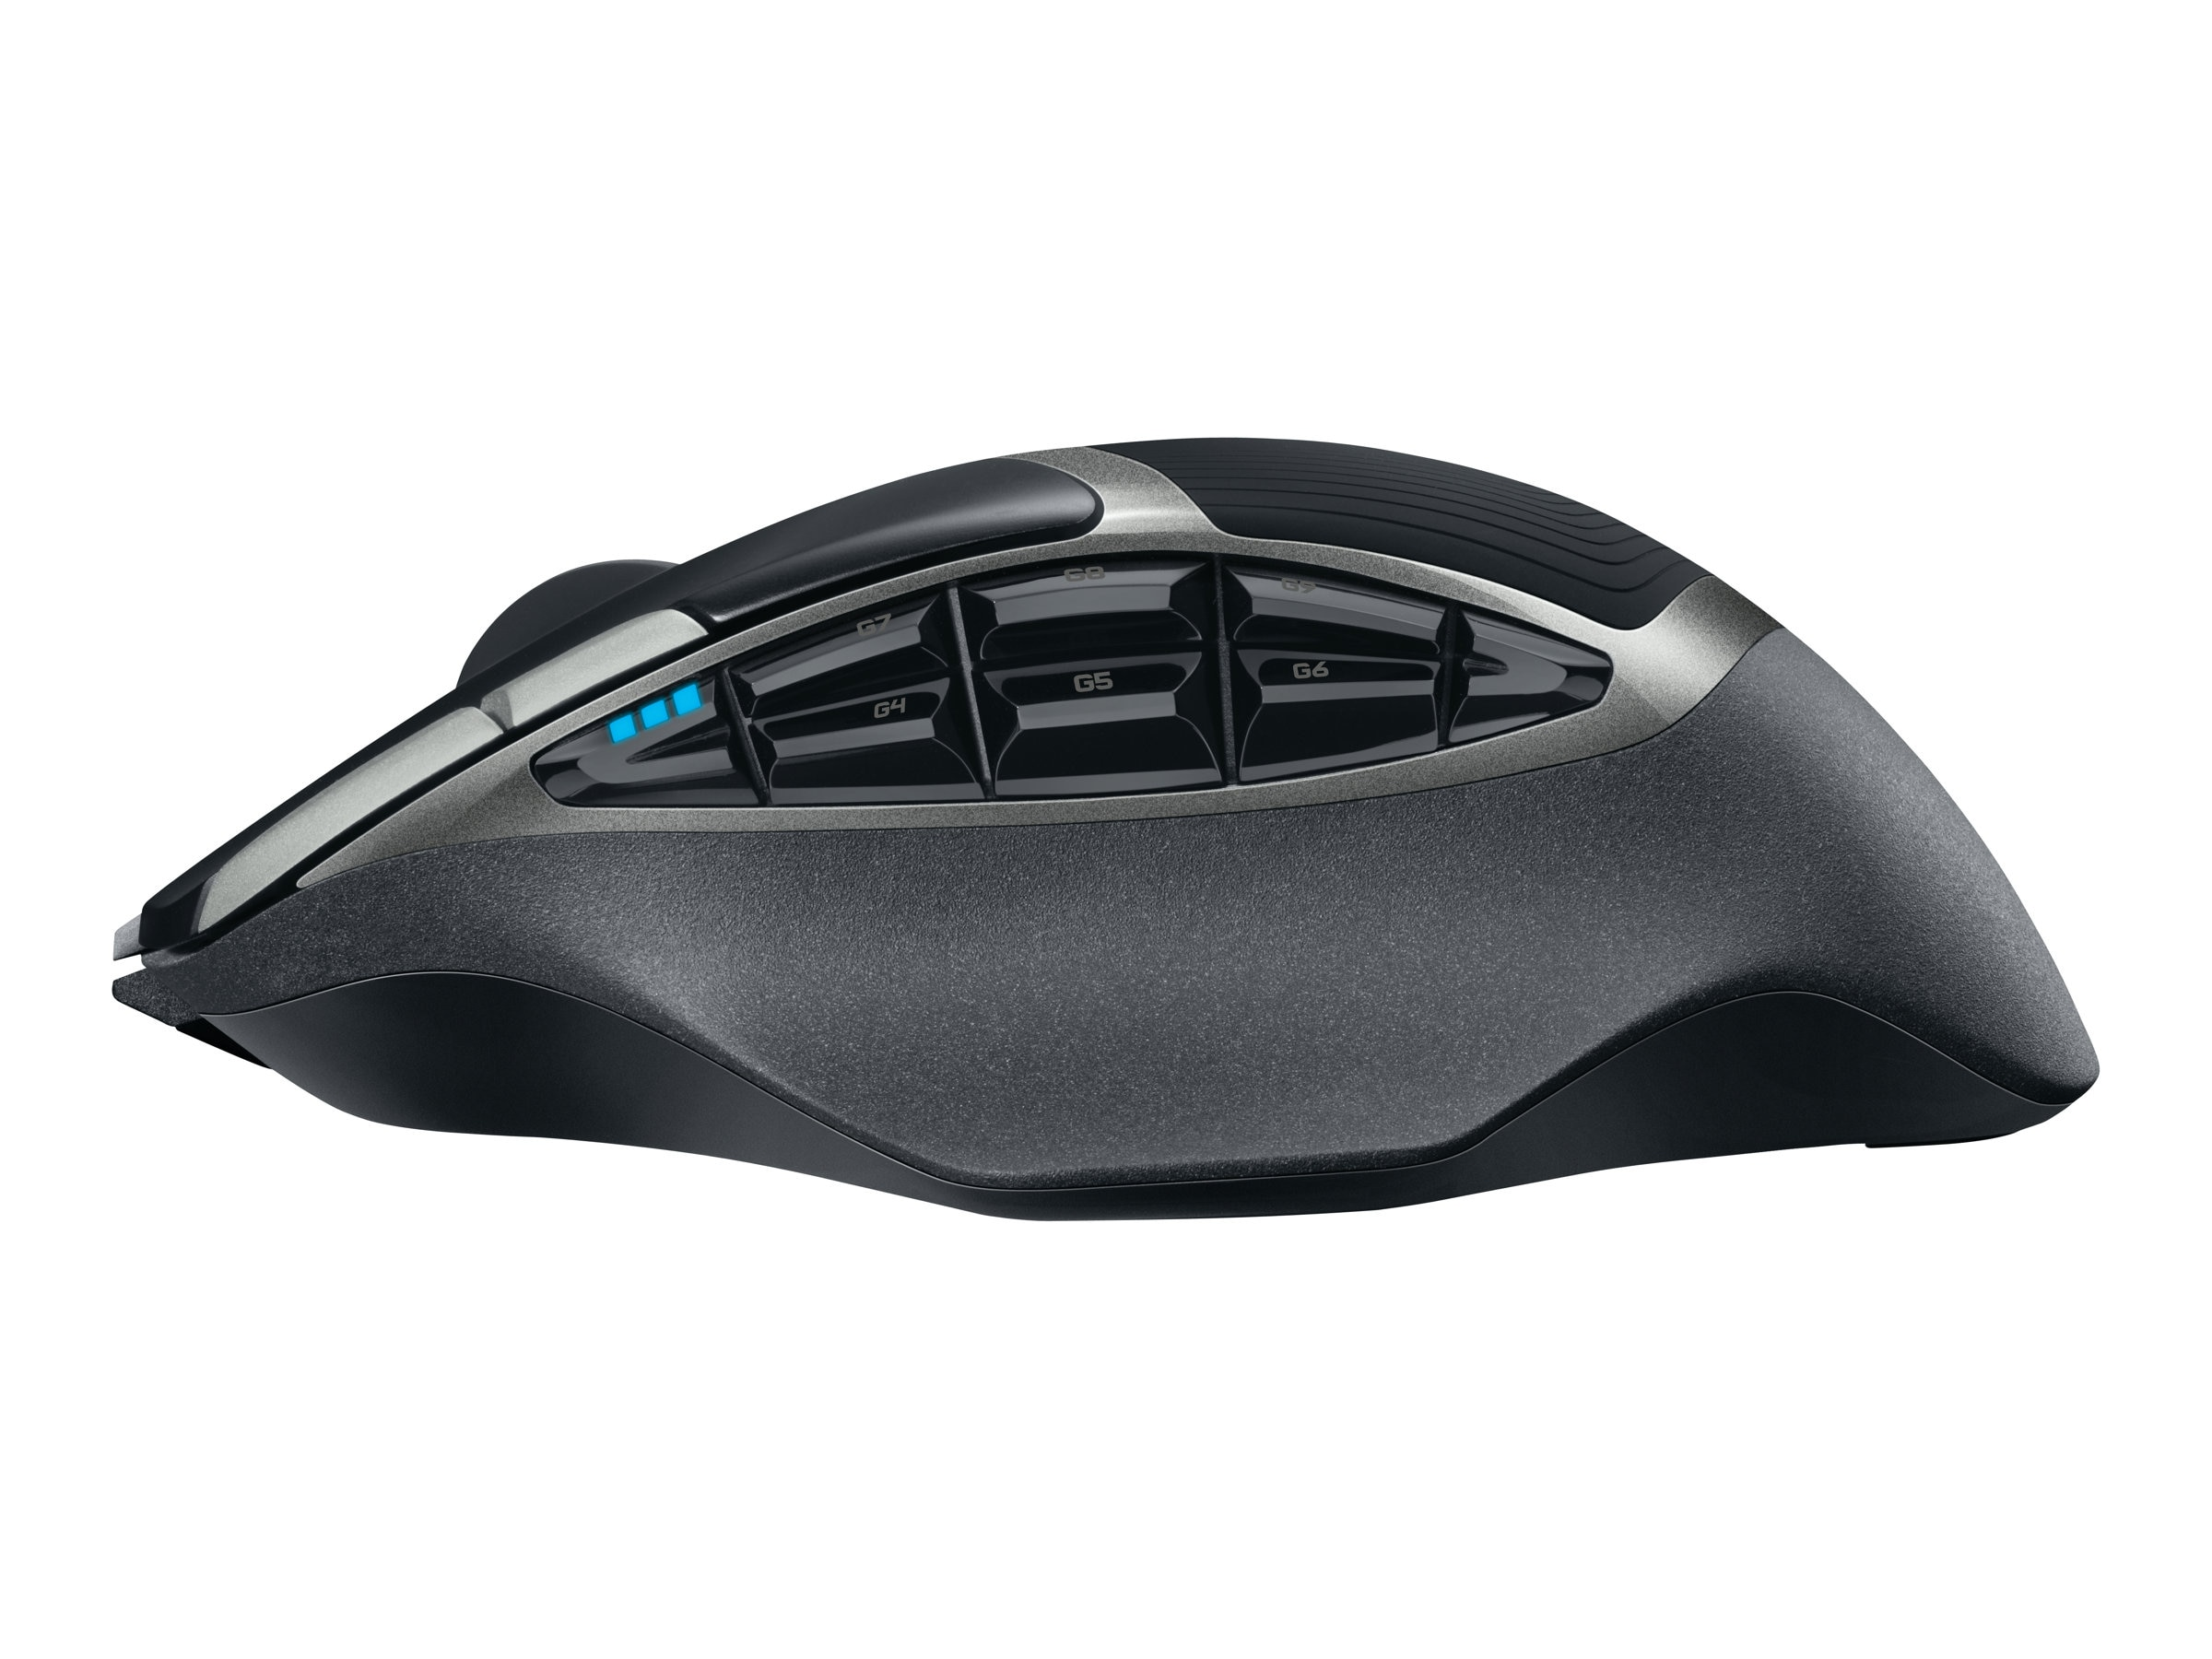 Logitech G602 Wireless Gaming Mouse, 910-003820